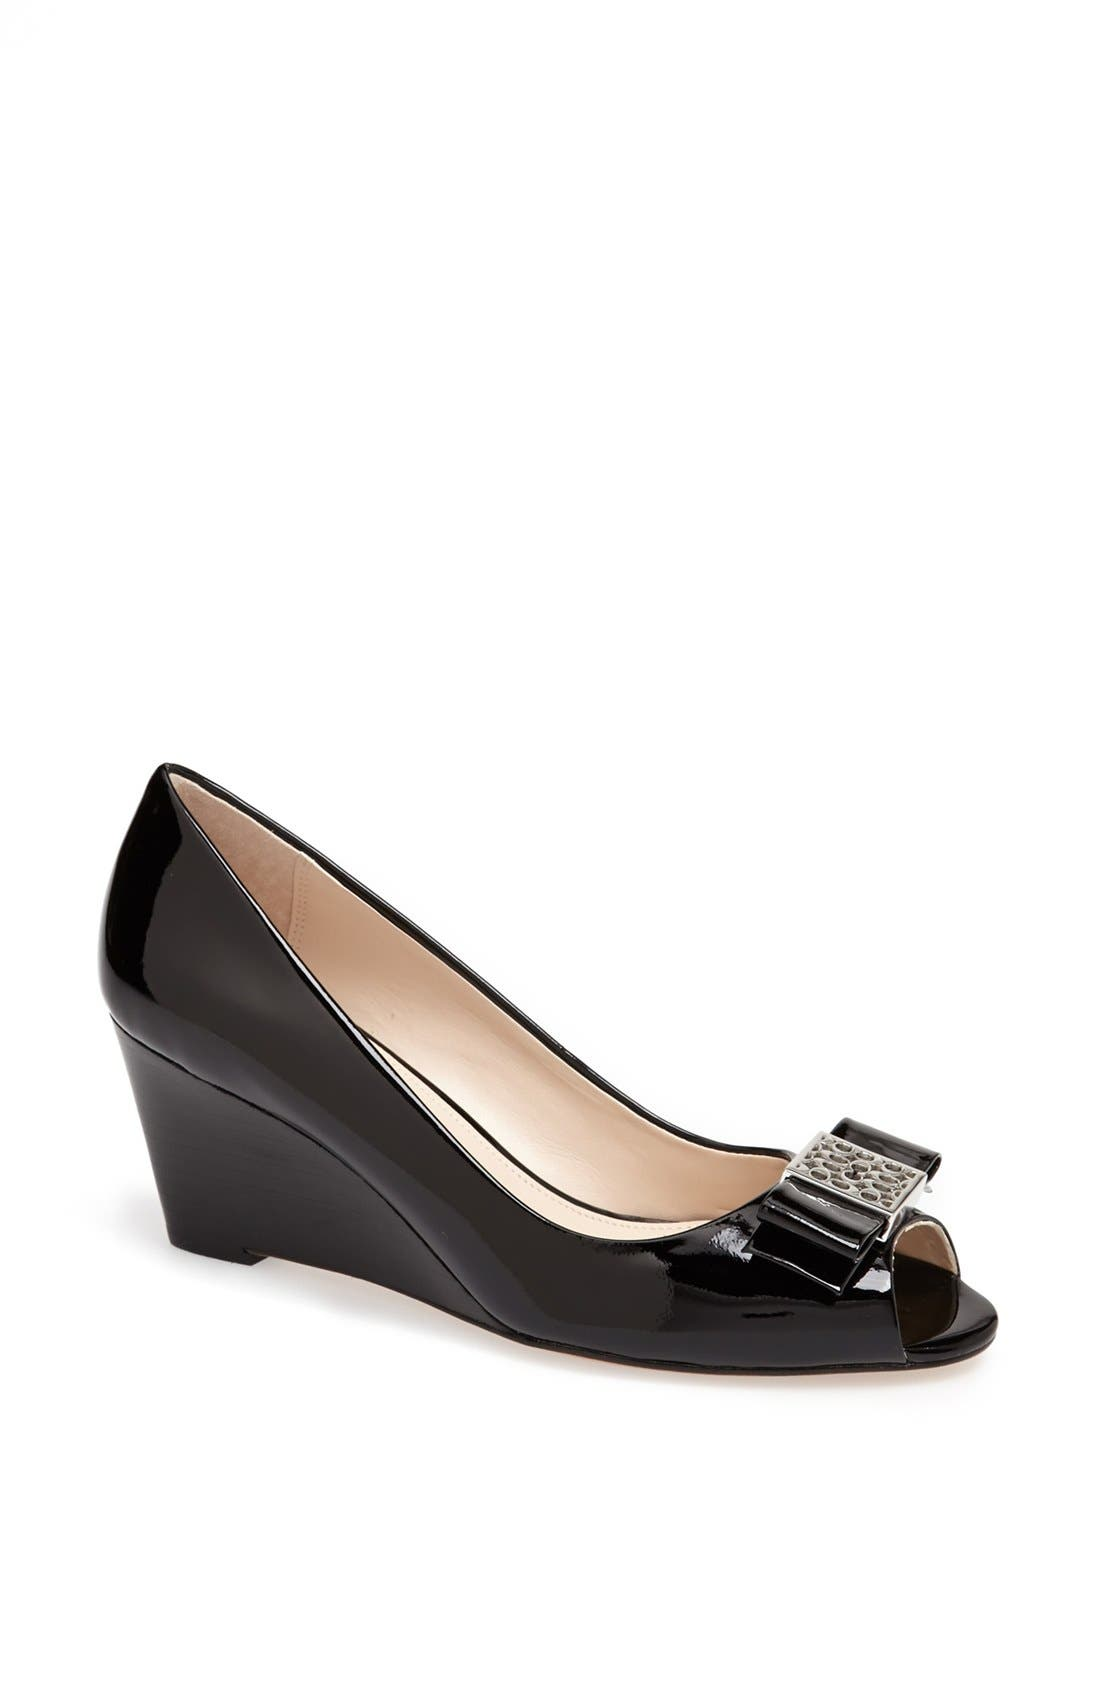 Alternate Image 1 Selected - COACH 'Gretchen' Wedge Pump